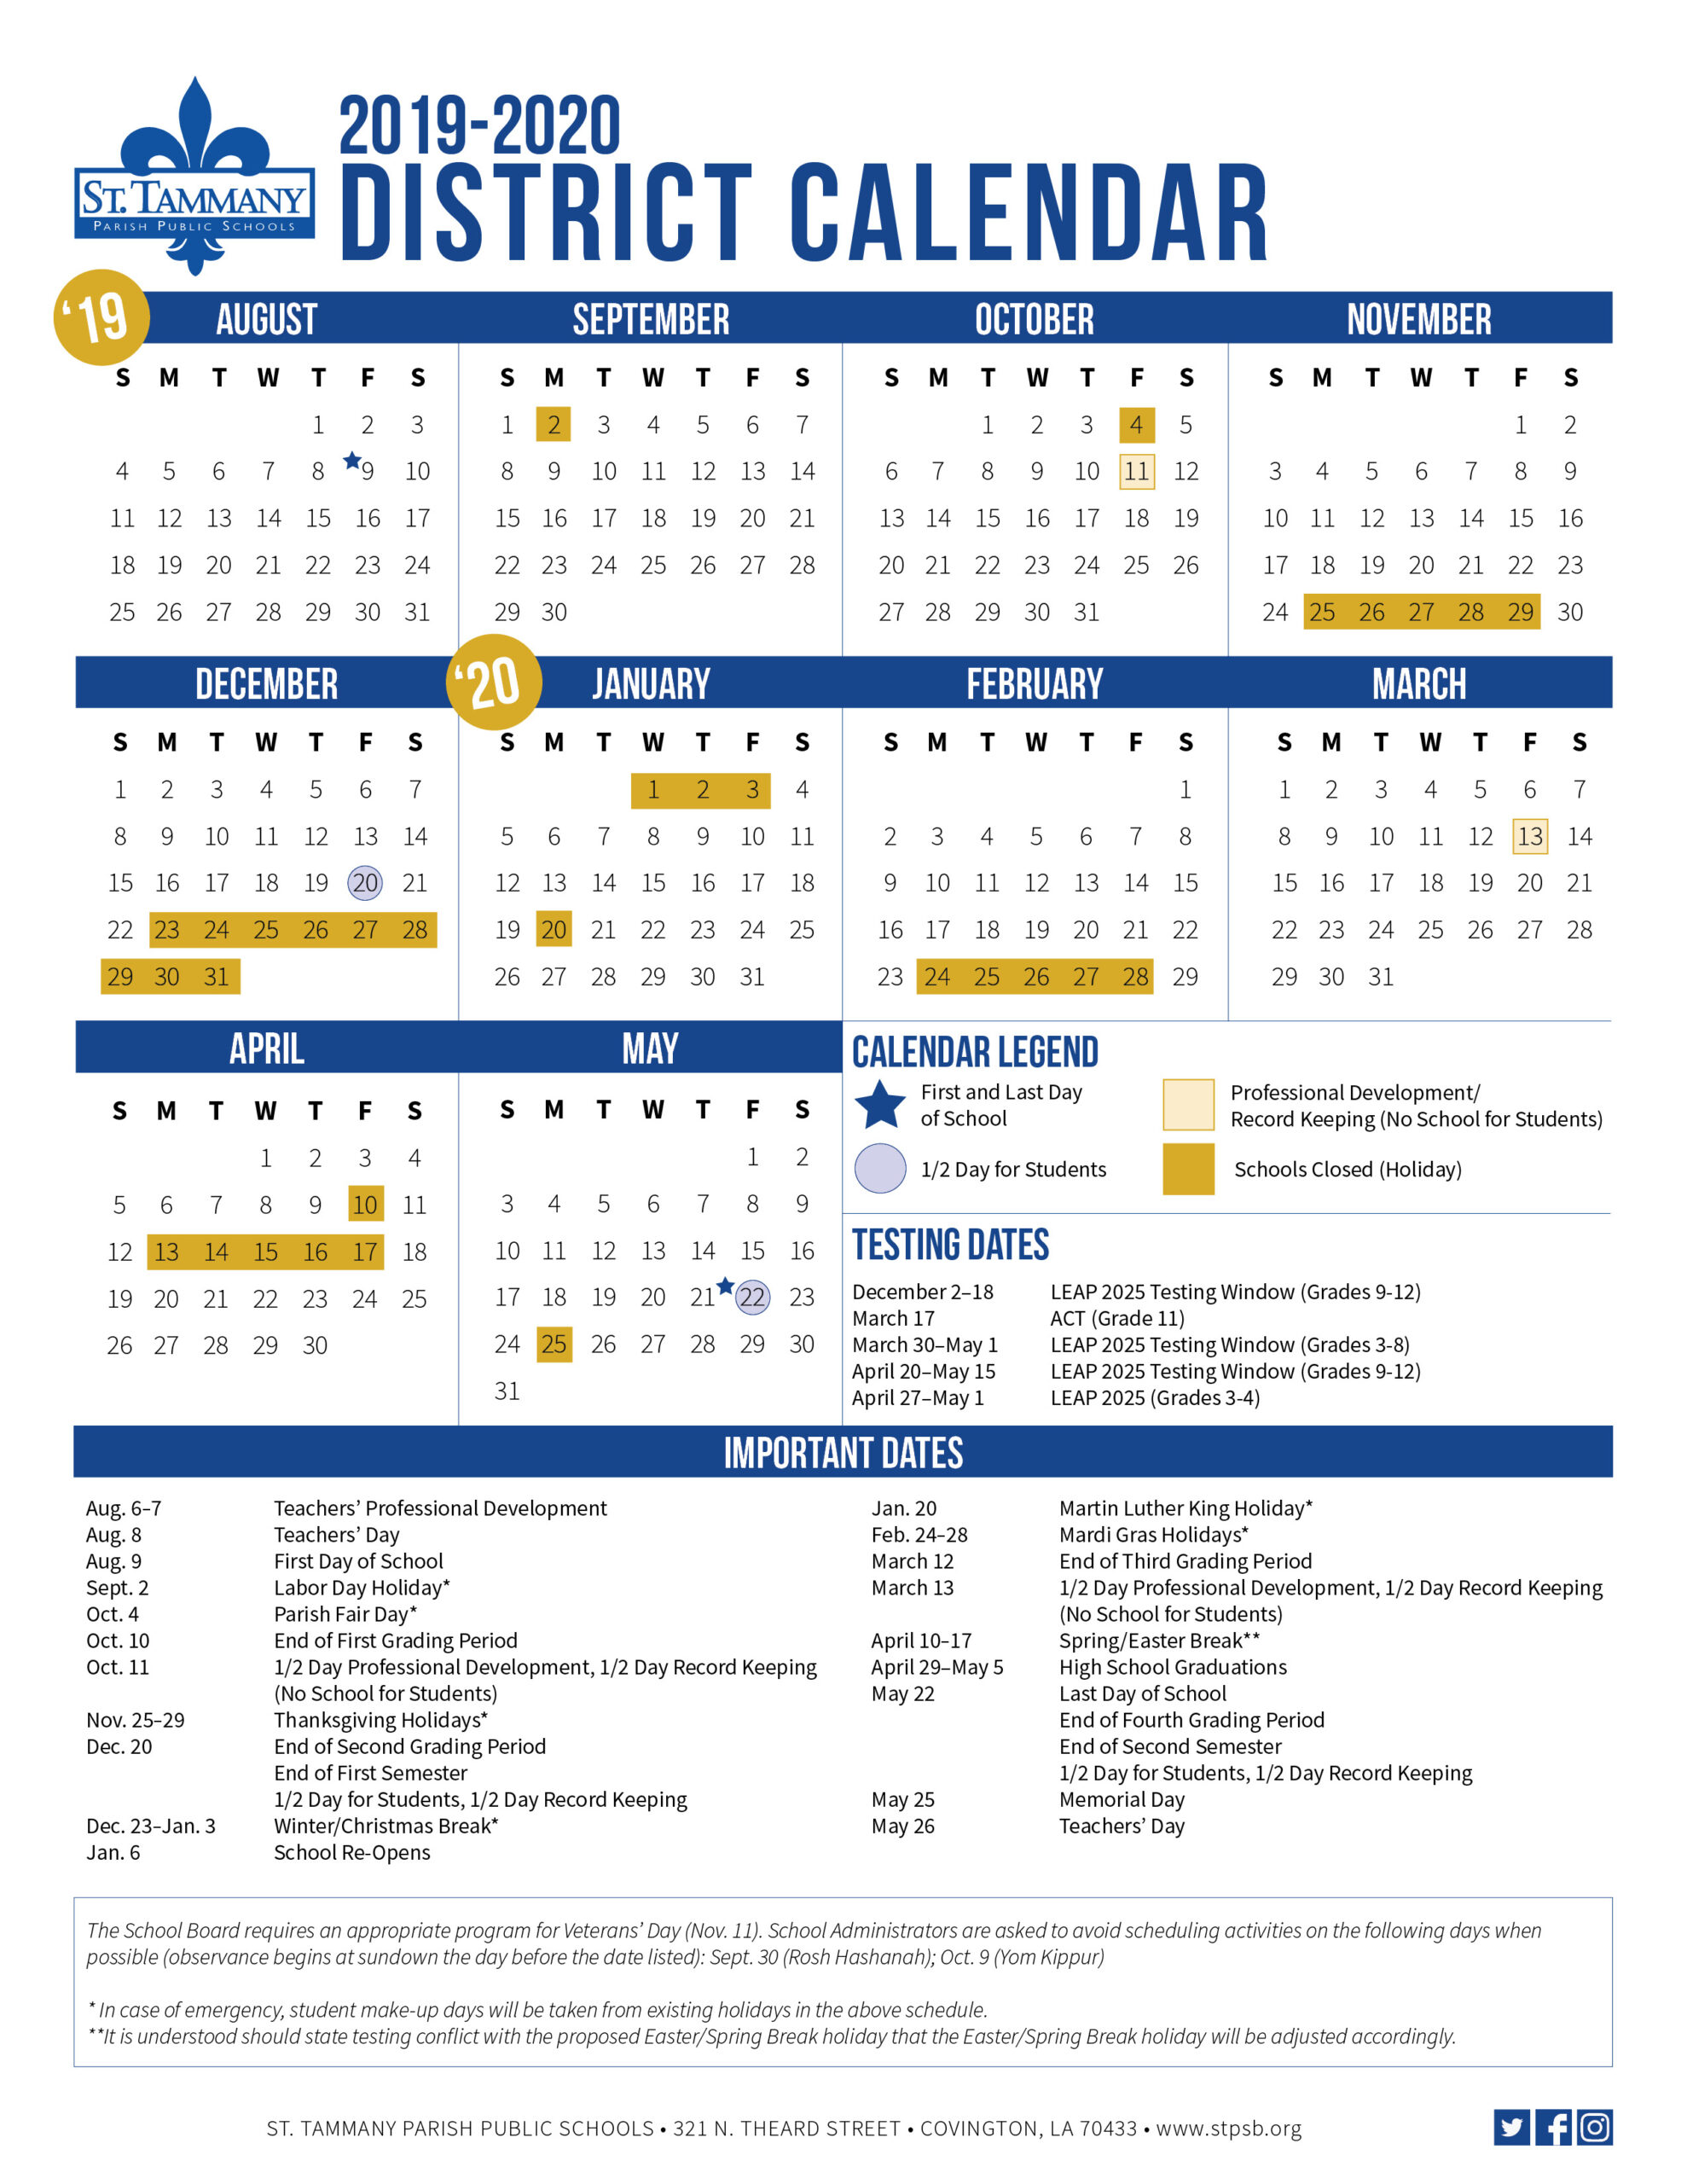 Calendar - St. Tammany Parish School Board